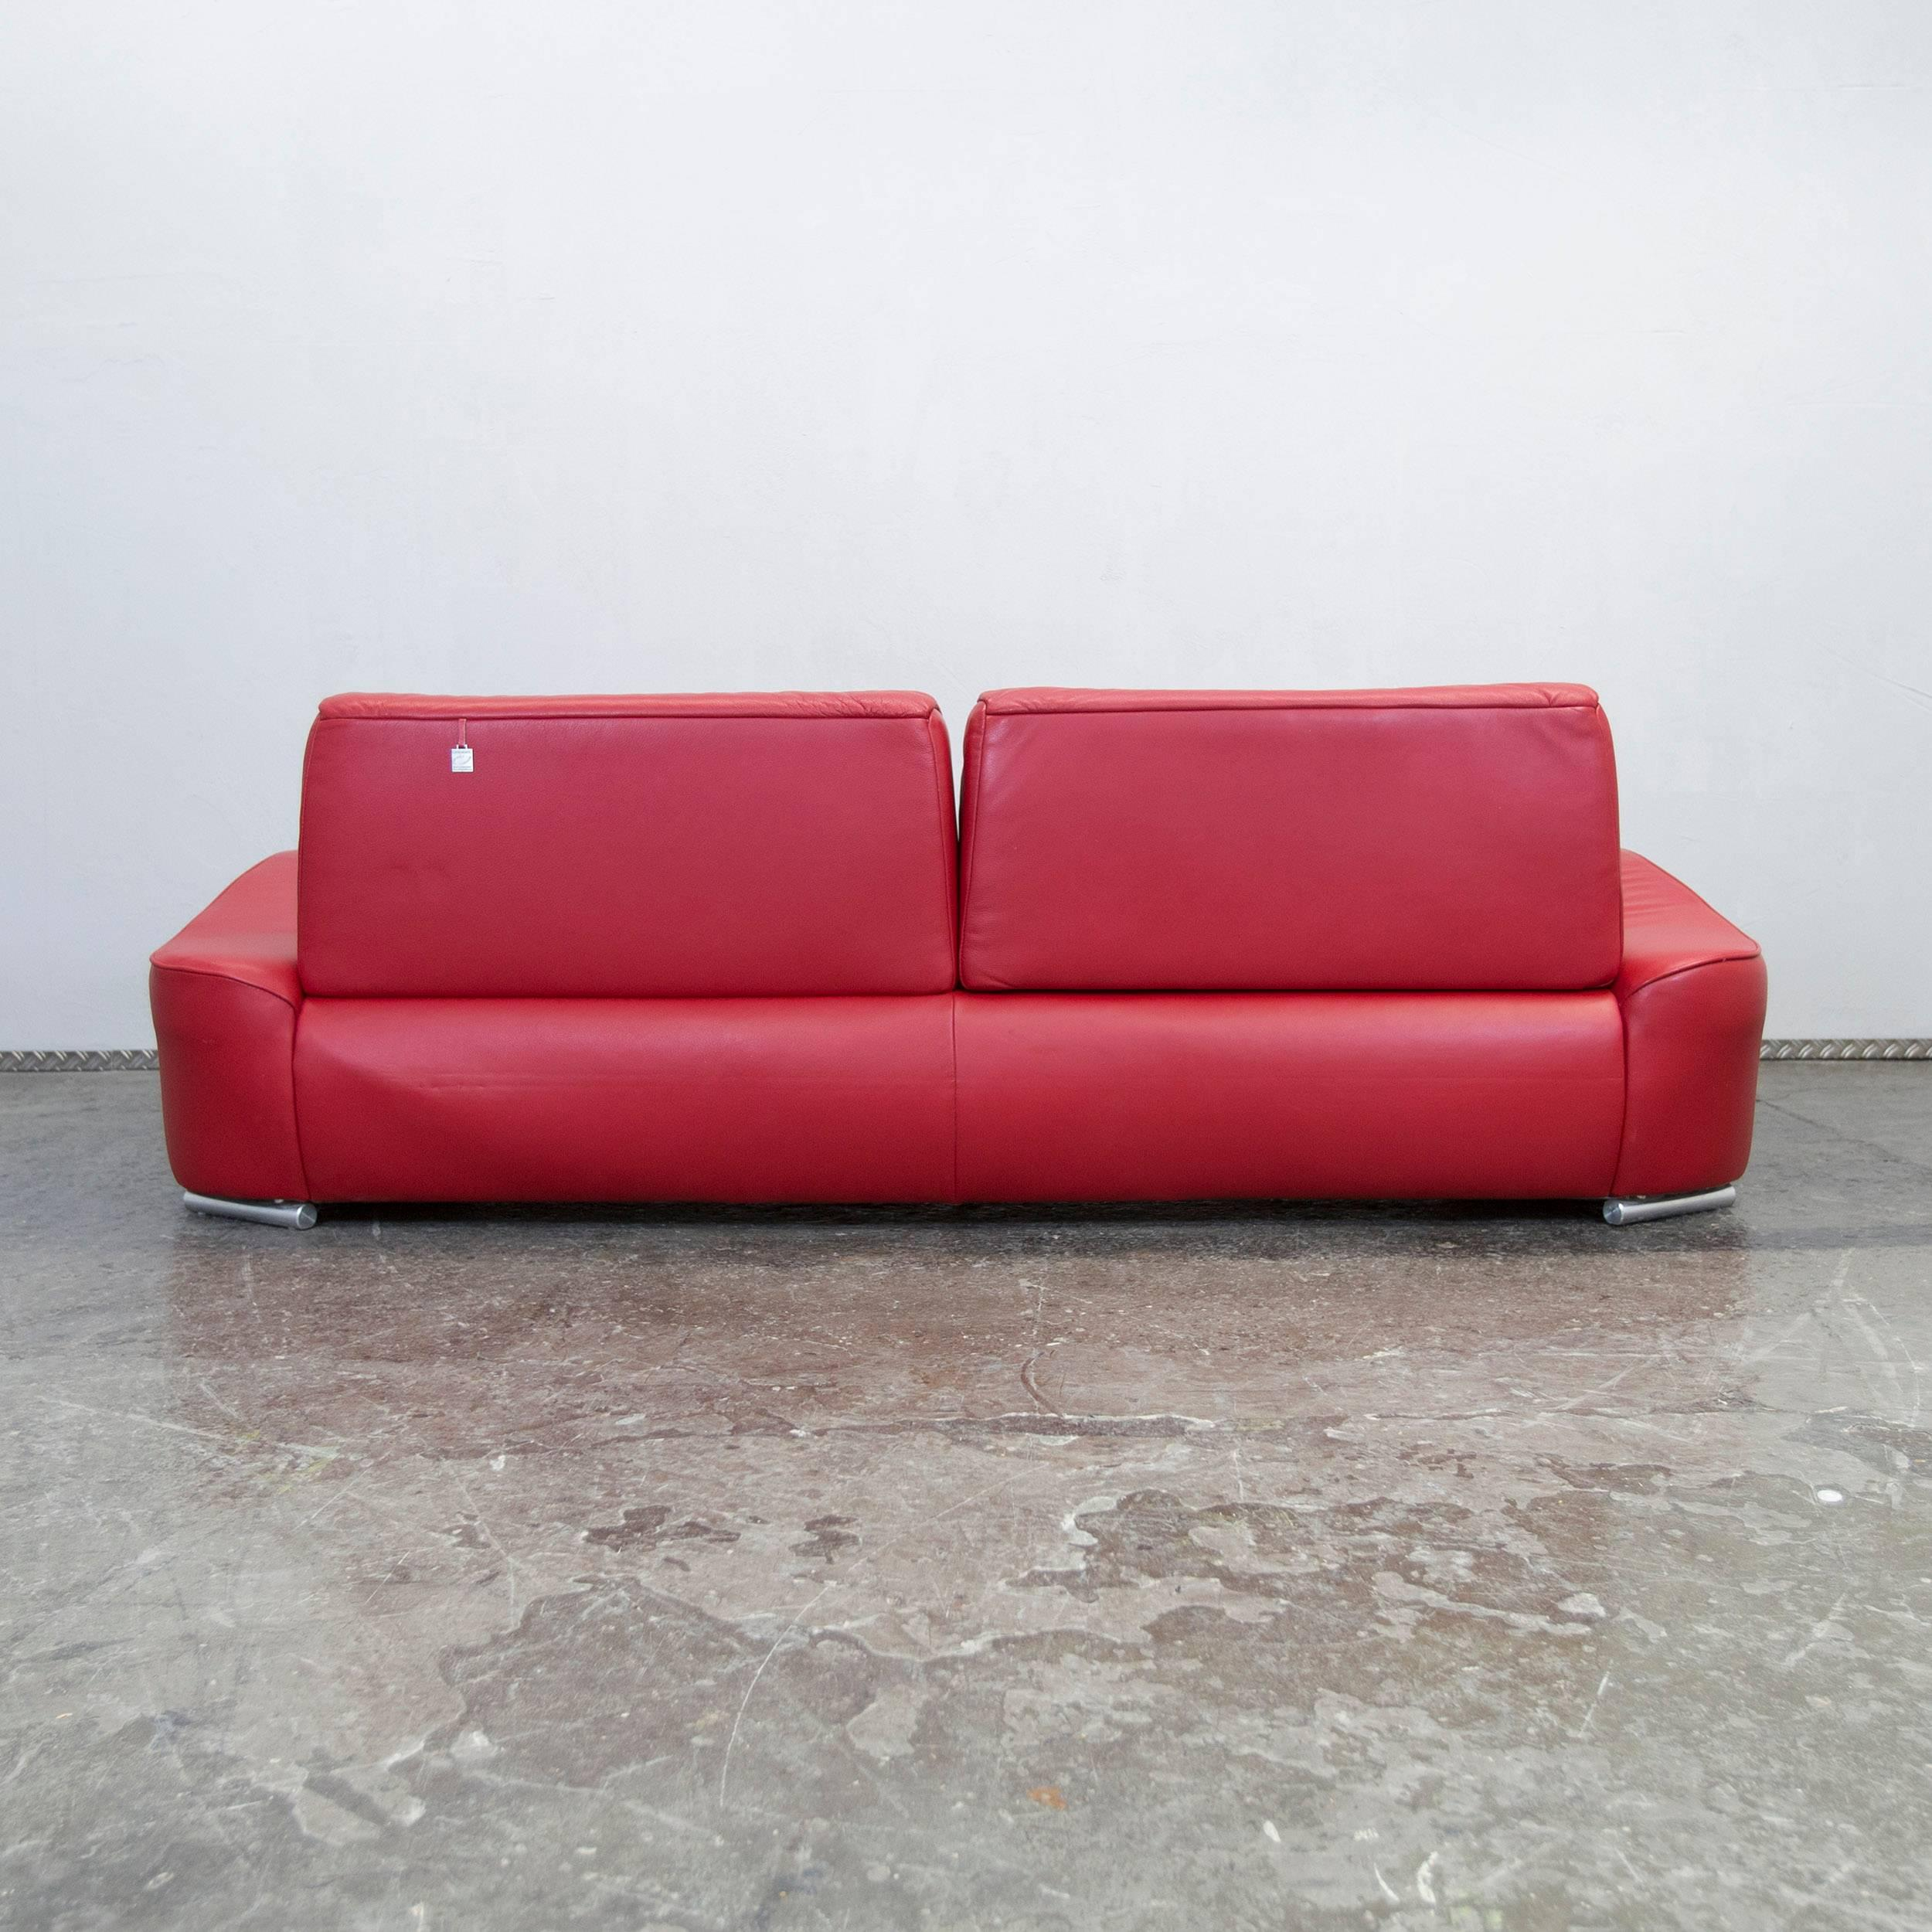 Couch Rot Hummel Designer Leather Sofa Red Three Seat Function Couch Modern